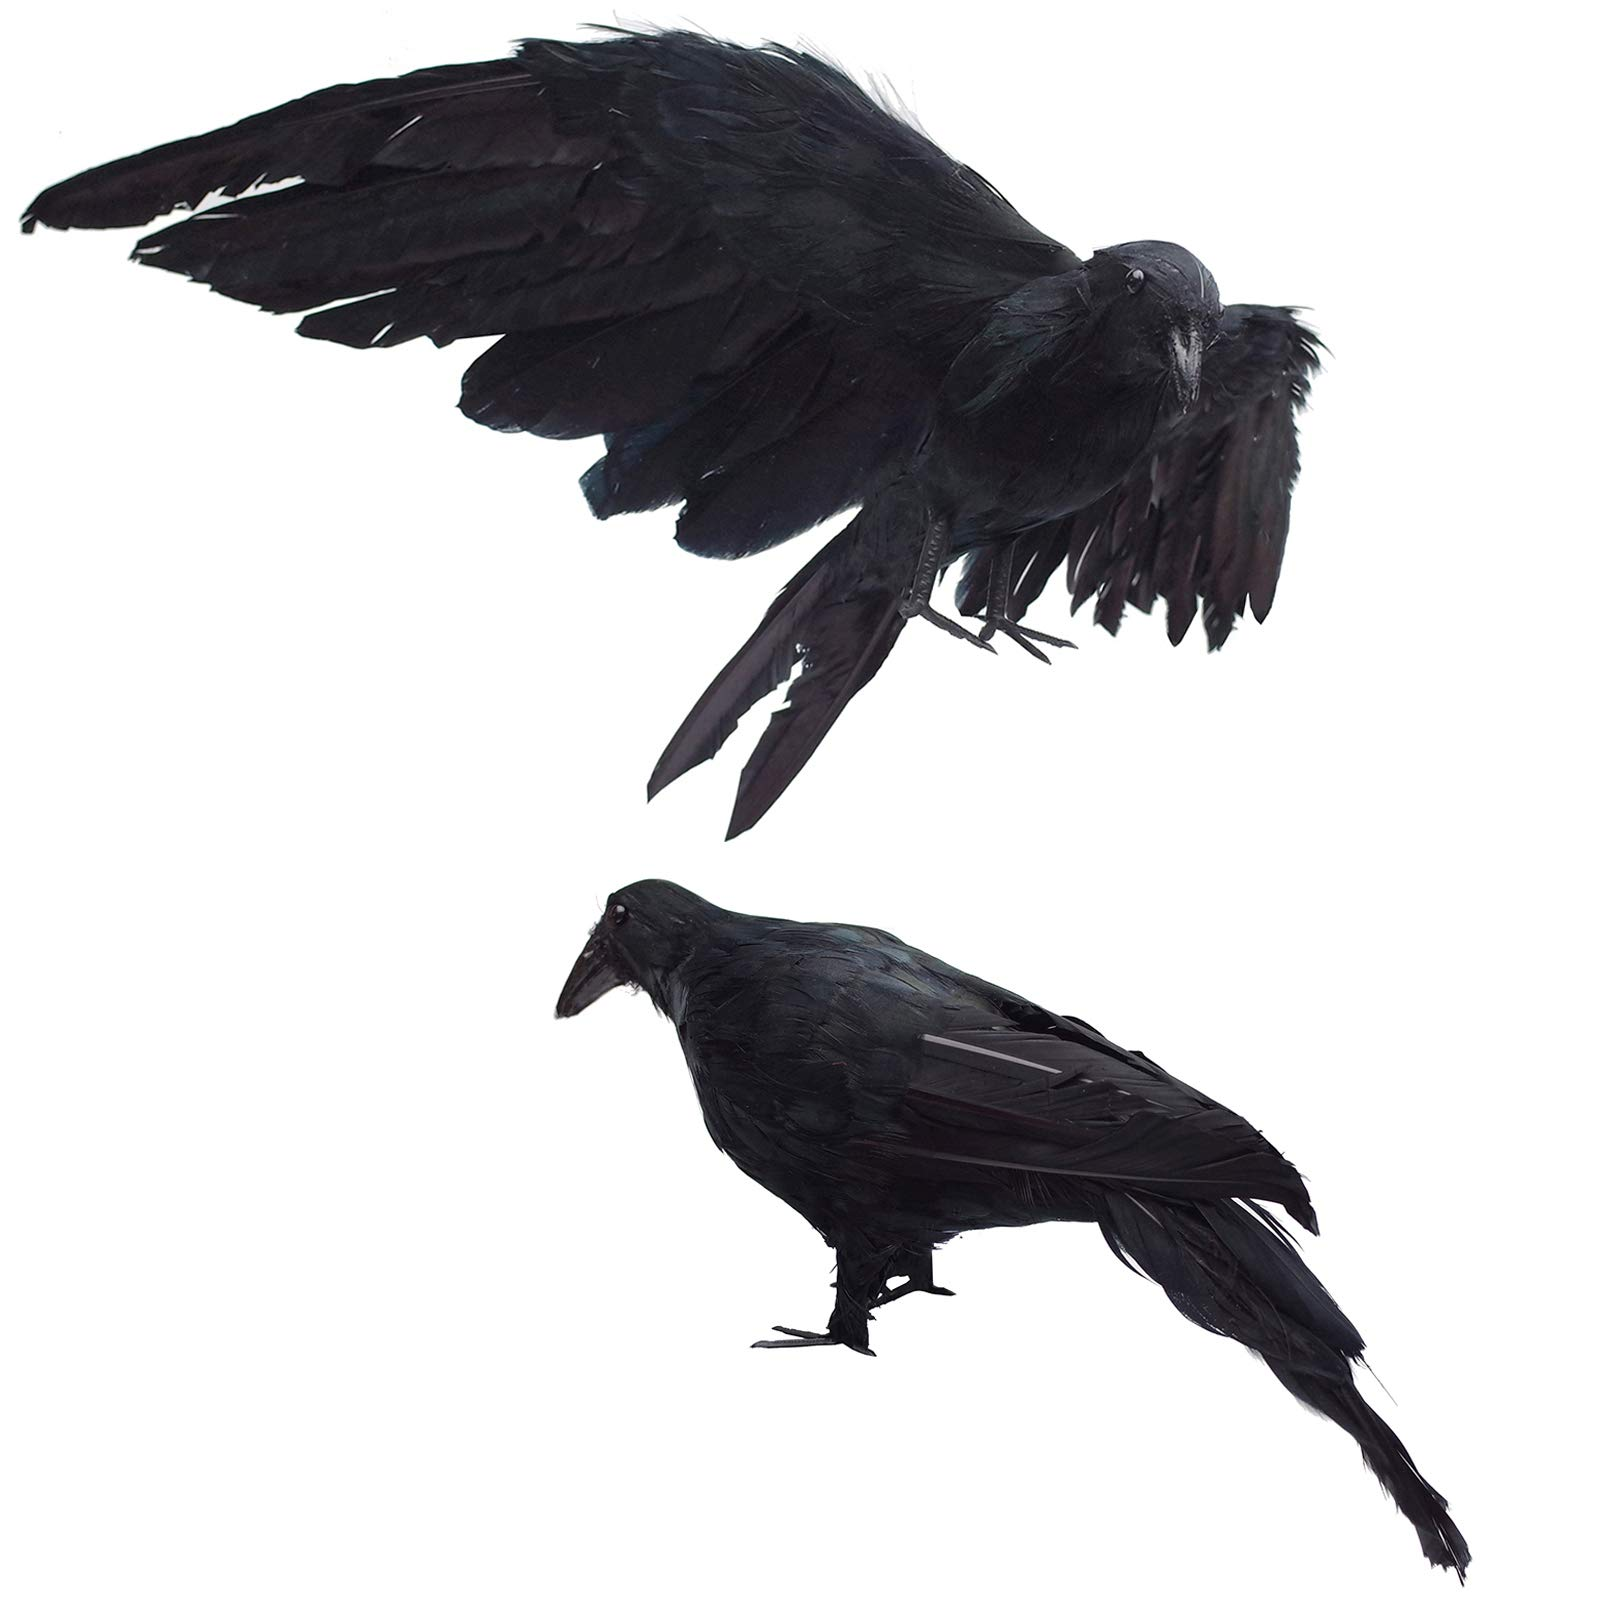 2-Pack Realistic Crows Lifesize Extra Large Handmade Black Feathered Crow for Halloween Decorations Birds